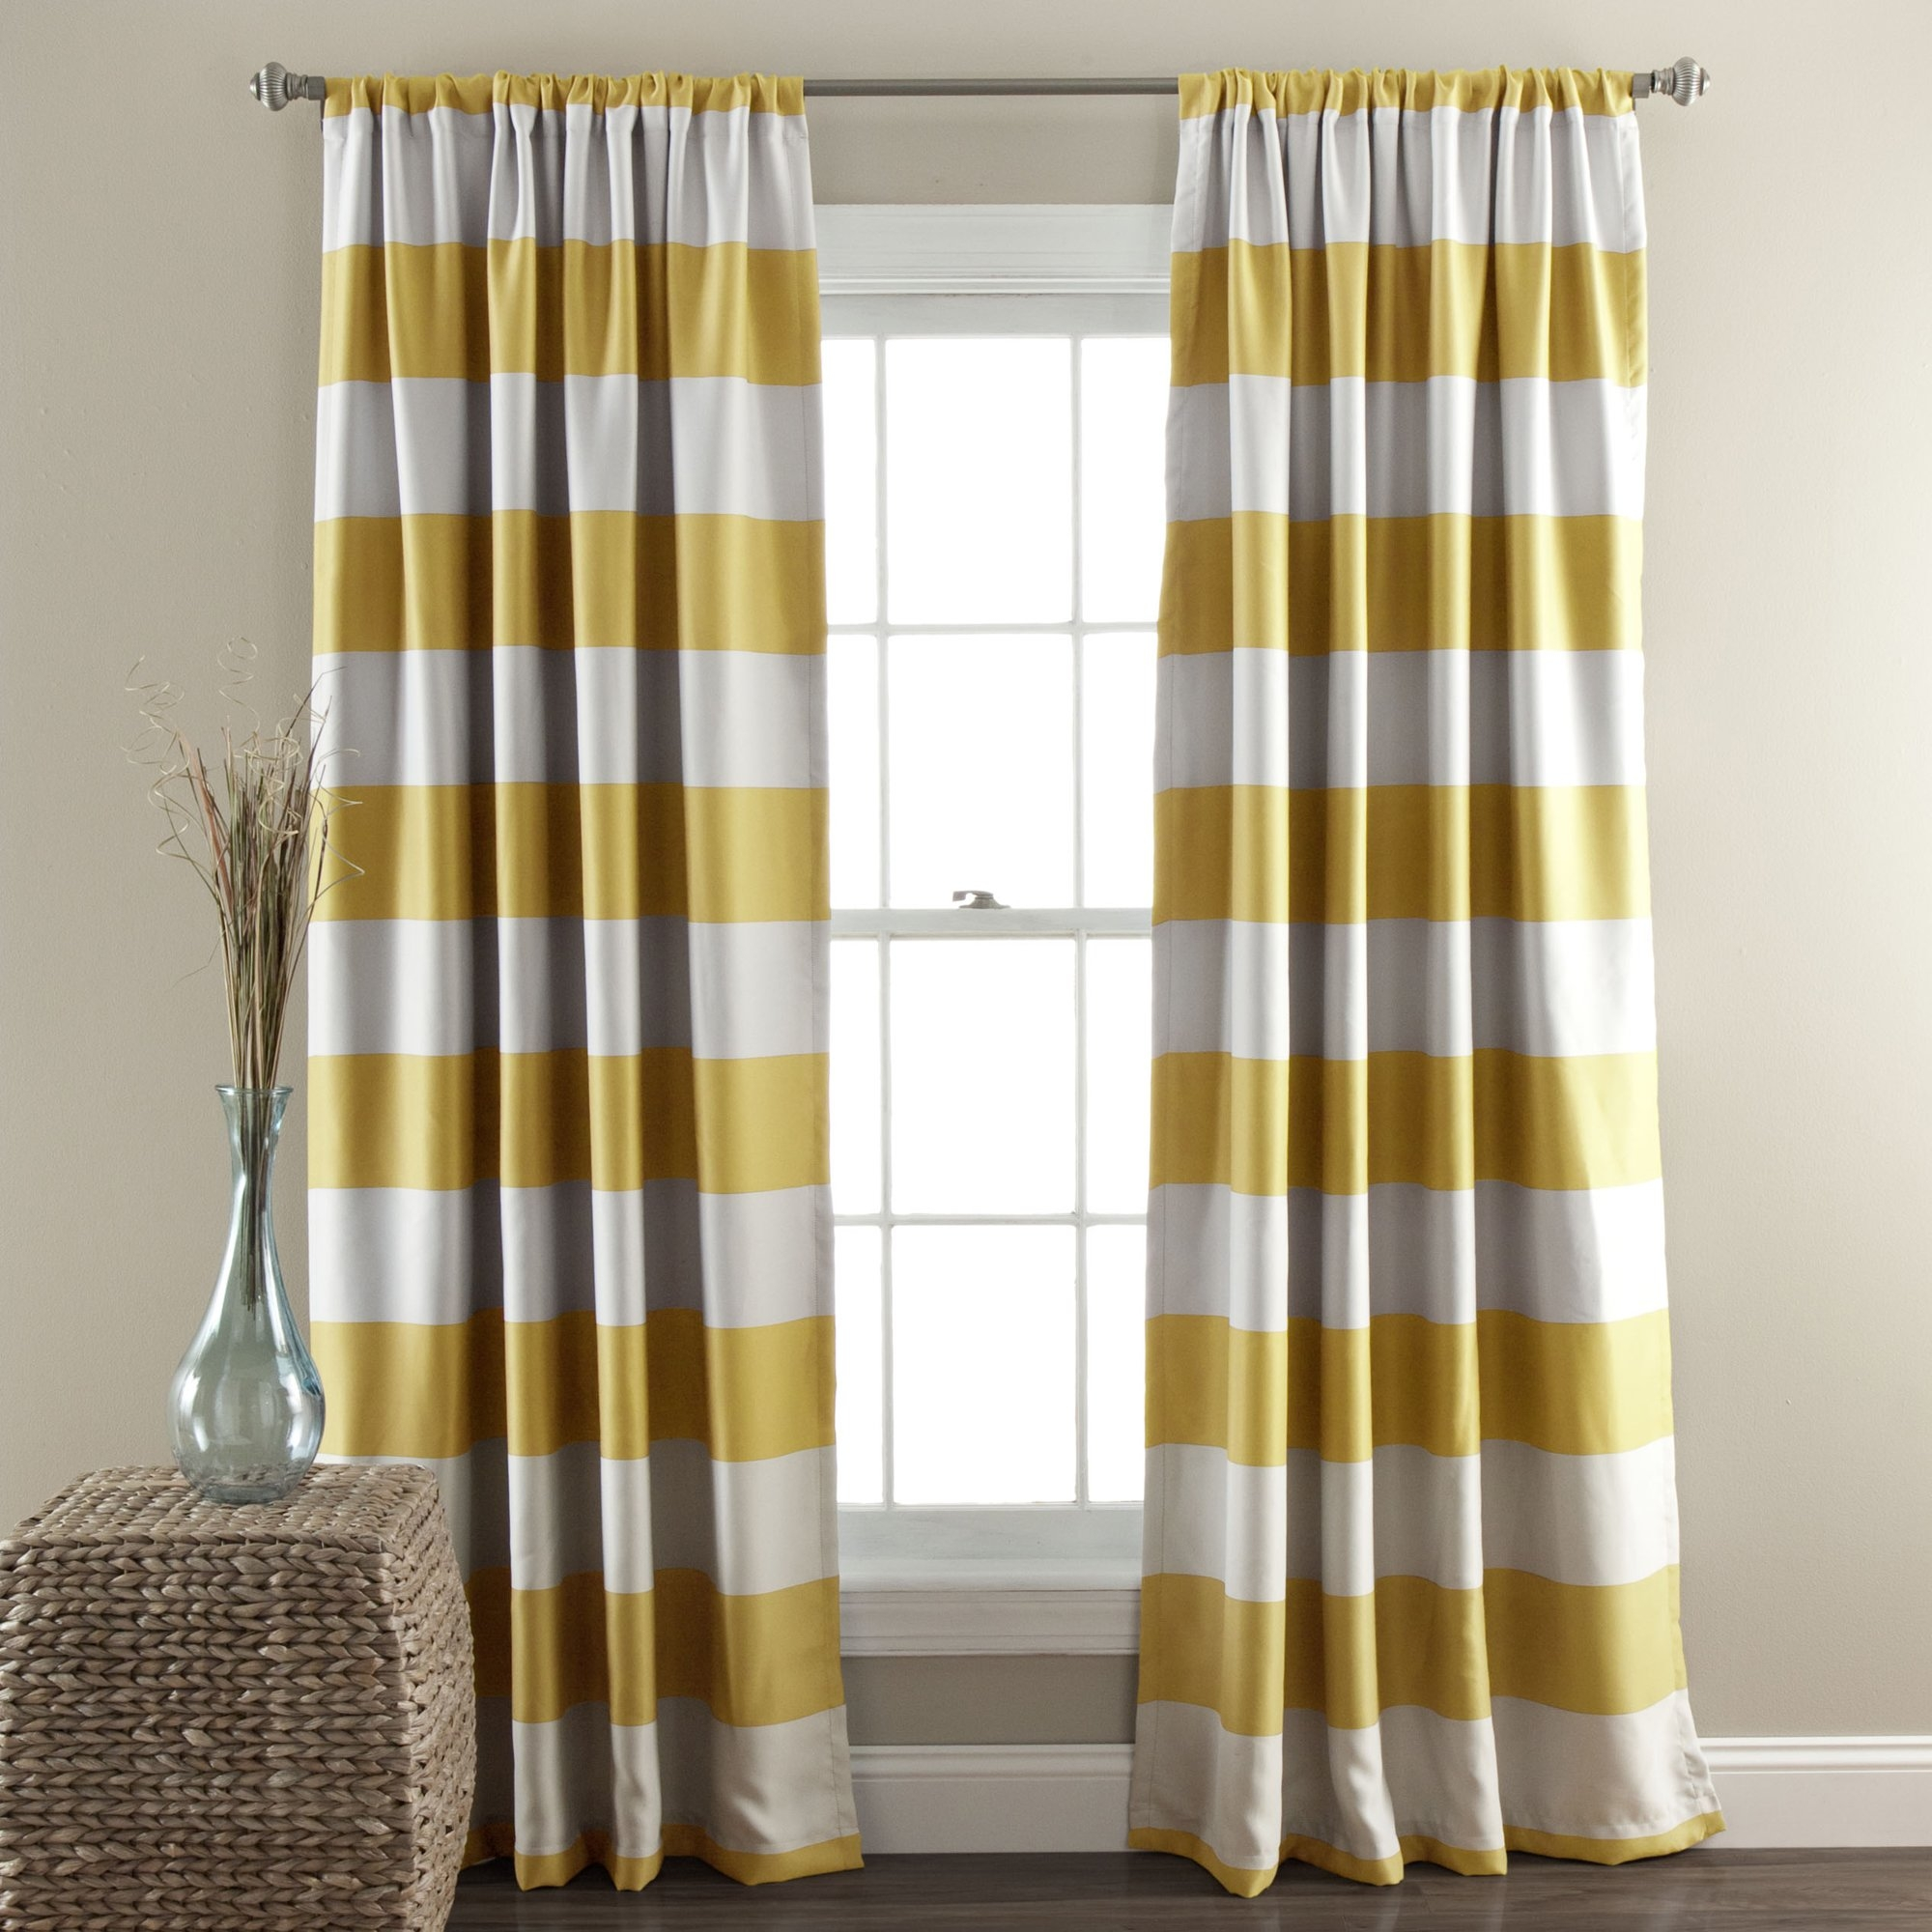 Regatta Striped Blackout Thermal Curtain Panels Reviews Birch Lane Inside Striped Thermal Curtains (Image 12 of 15)